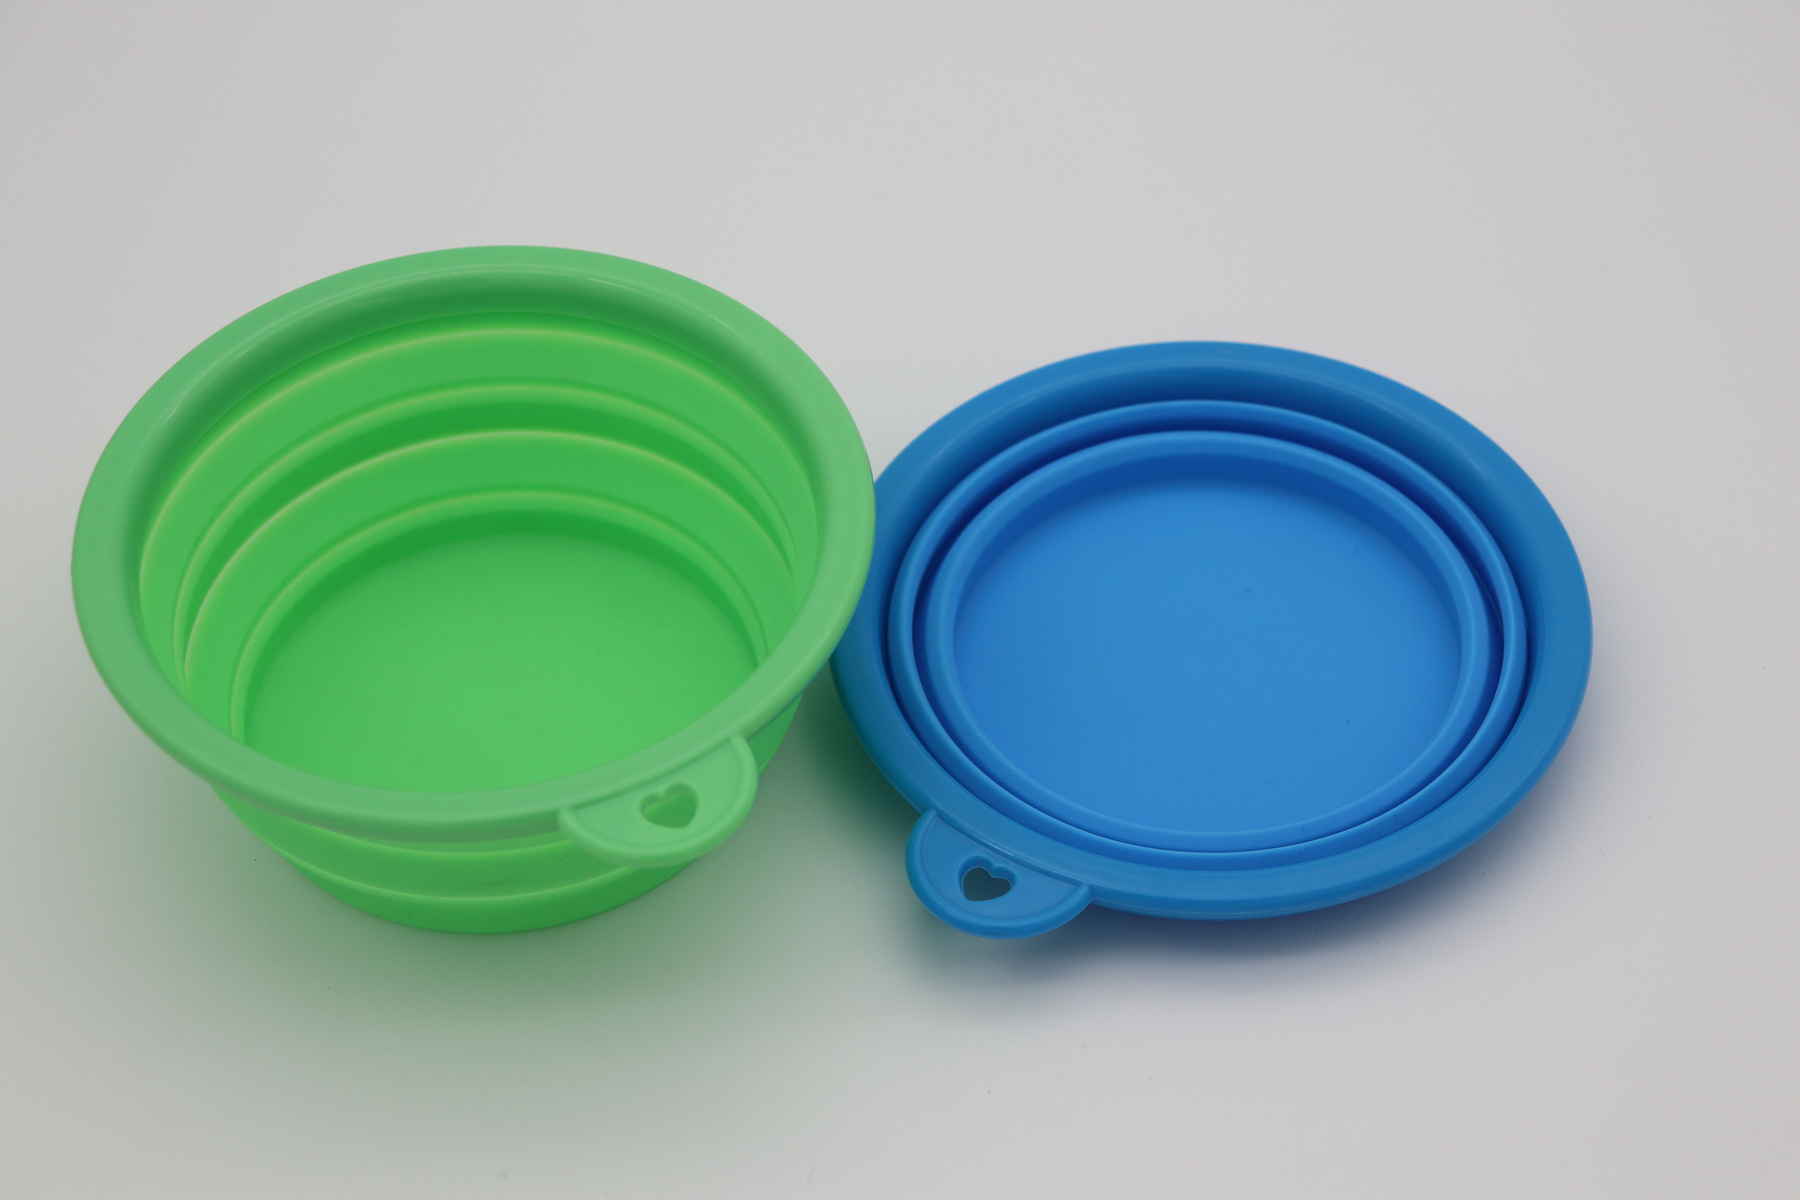 http://www.refinehksilicone.cn/data/images/product/20180417100356_548.jpg